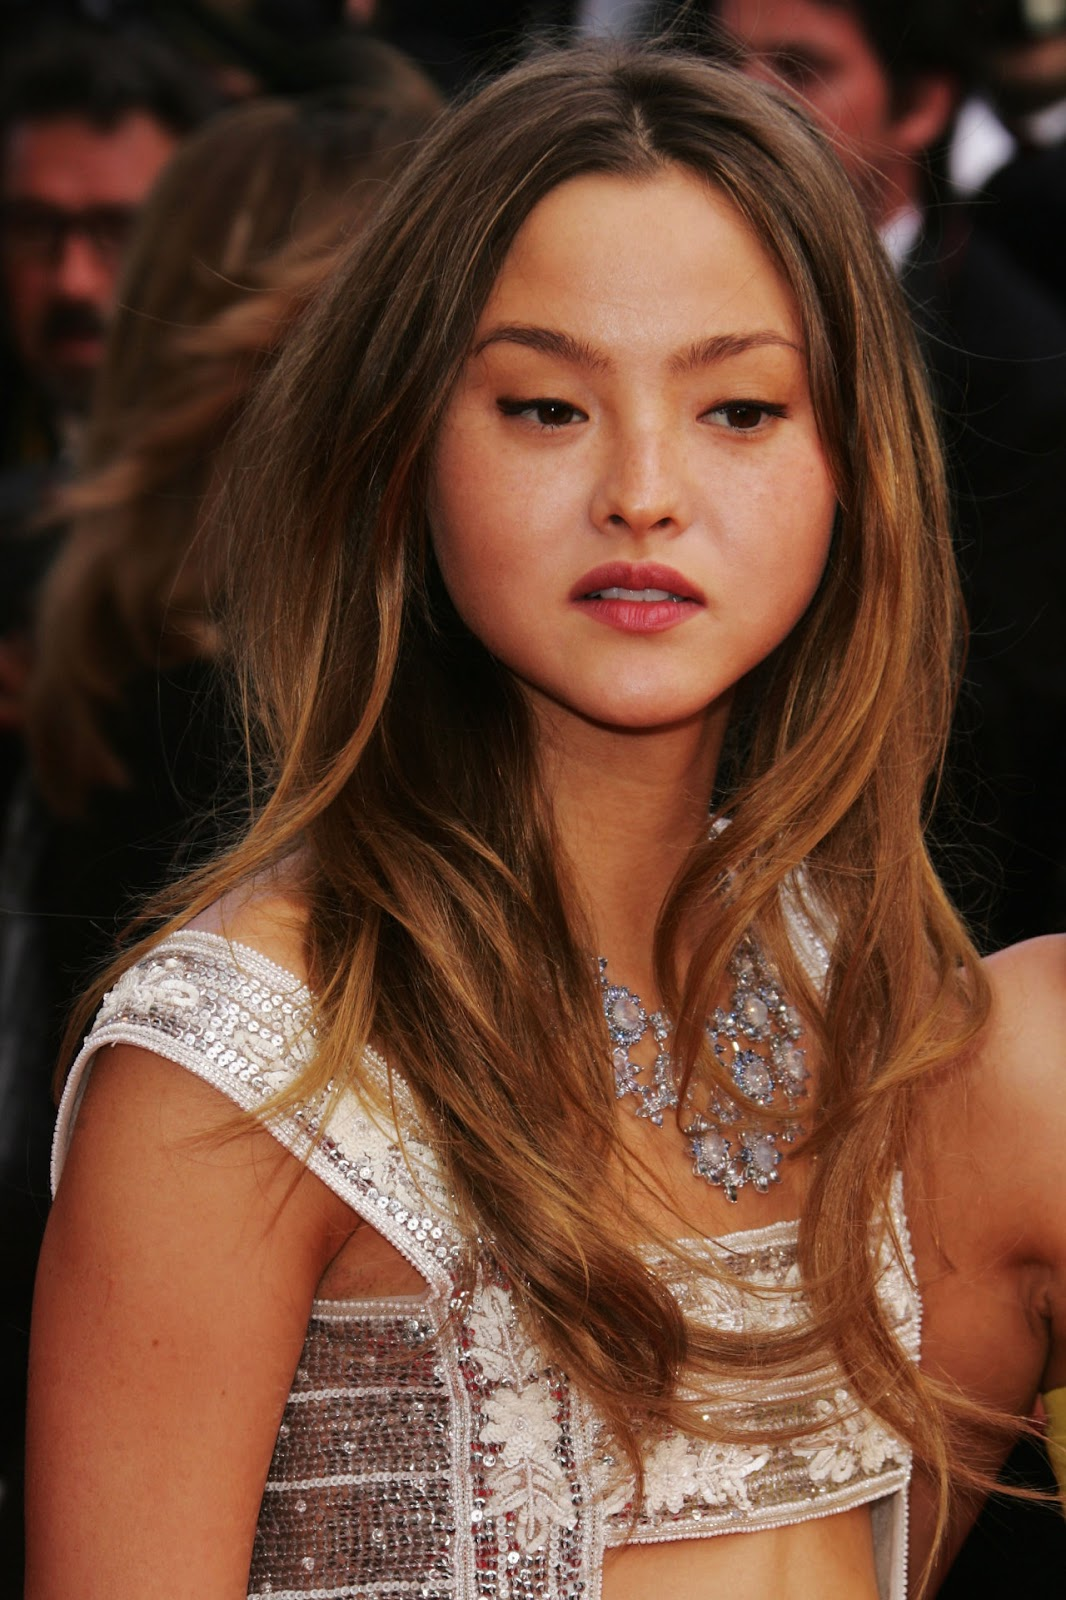 Devon Aoki Hd Wallpapers High Definition Free Background